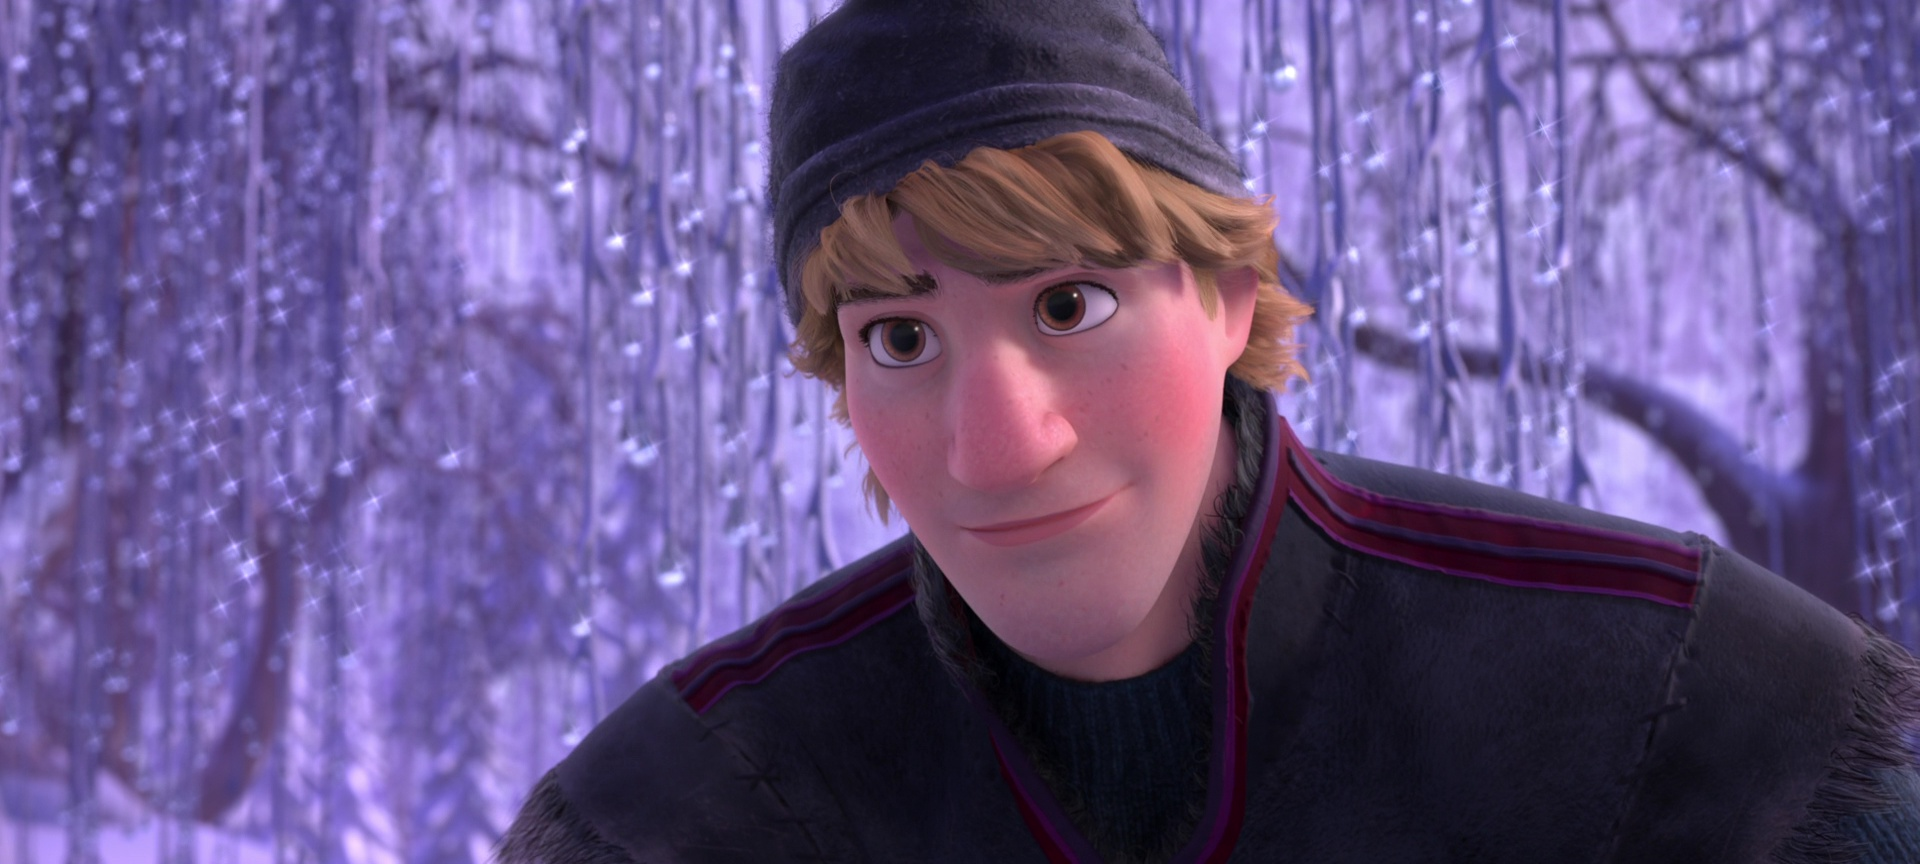 kristoff personnage dans la reine des neiges disney planet. Black Bedroom Furniture Sets. Home Design Ideas